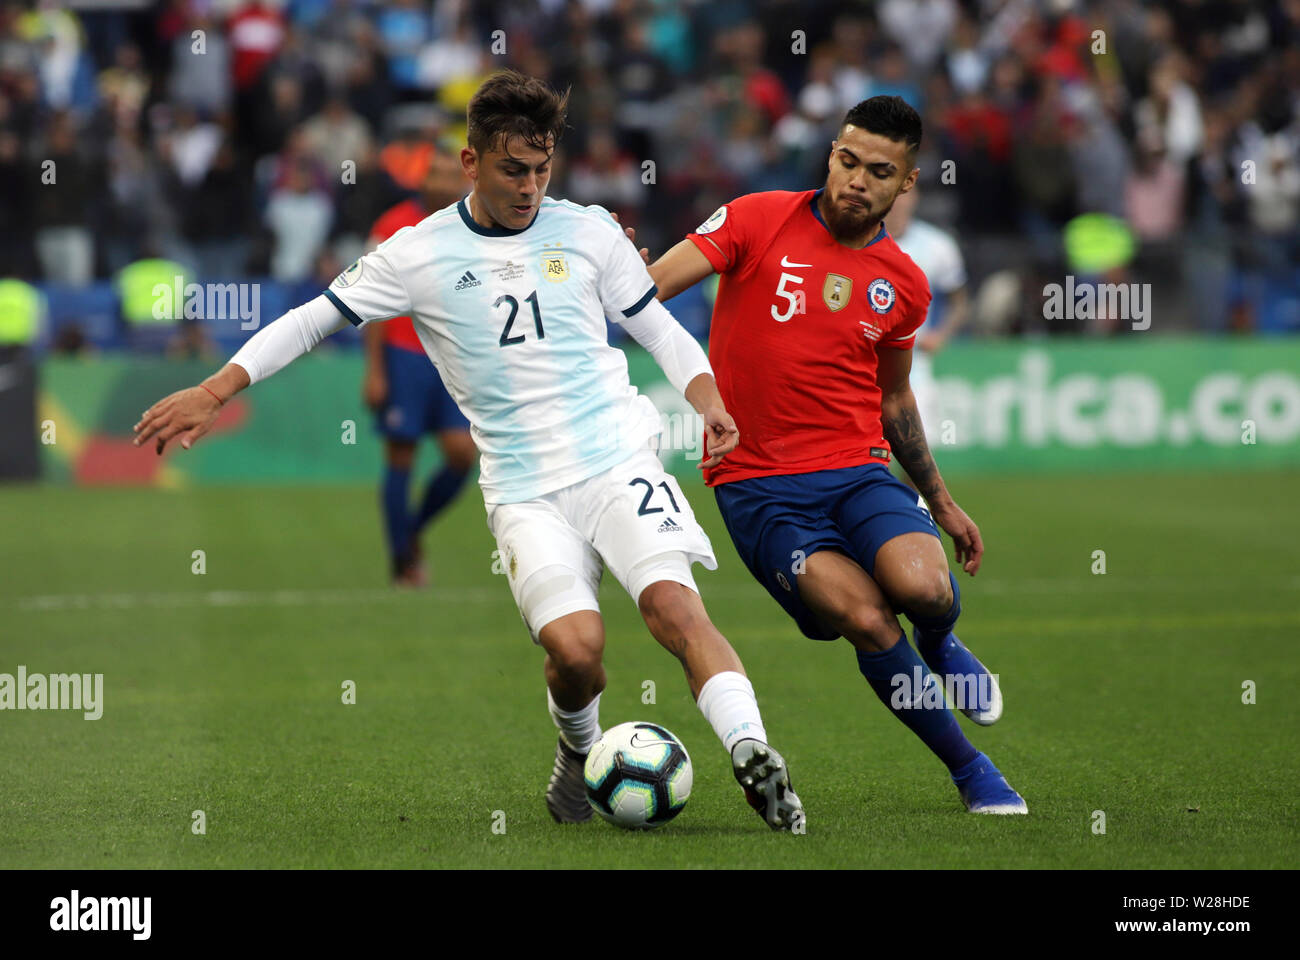 Sao Paulo, Brazil. 6th July, 2019. Argentina's Paulo Dybala (L) competes with Paulo Diaz of Chile during the 3rd place match of Copa America 2019 between Argentina and Chile in Sao Paulo, Brazil, July 6, 2019. Credit: Rahel Patrasso/Xinhua/Alamy Live News - Stock Image